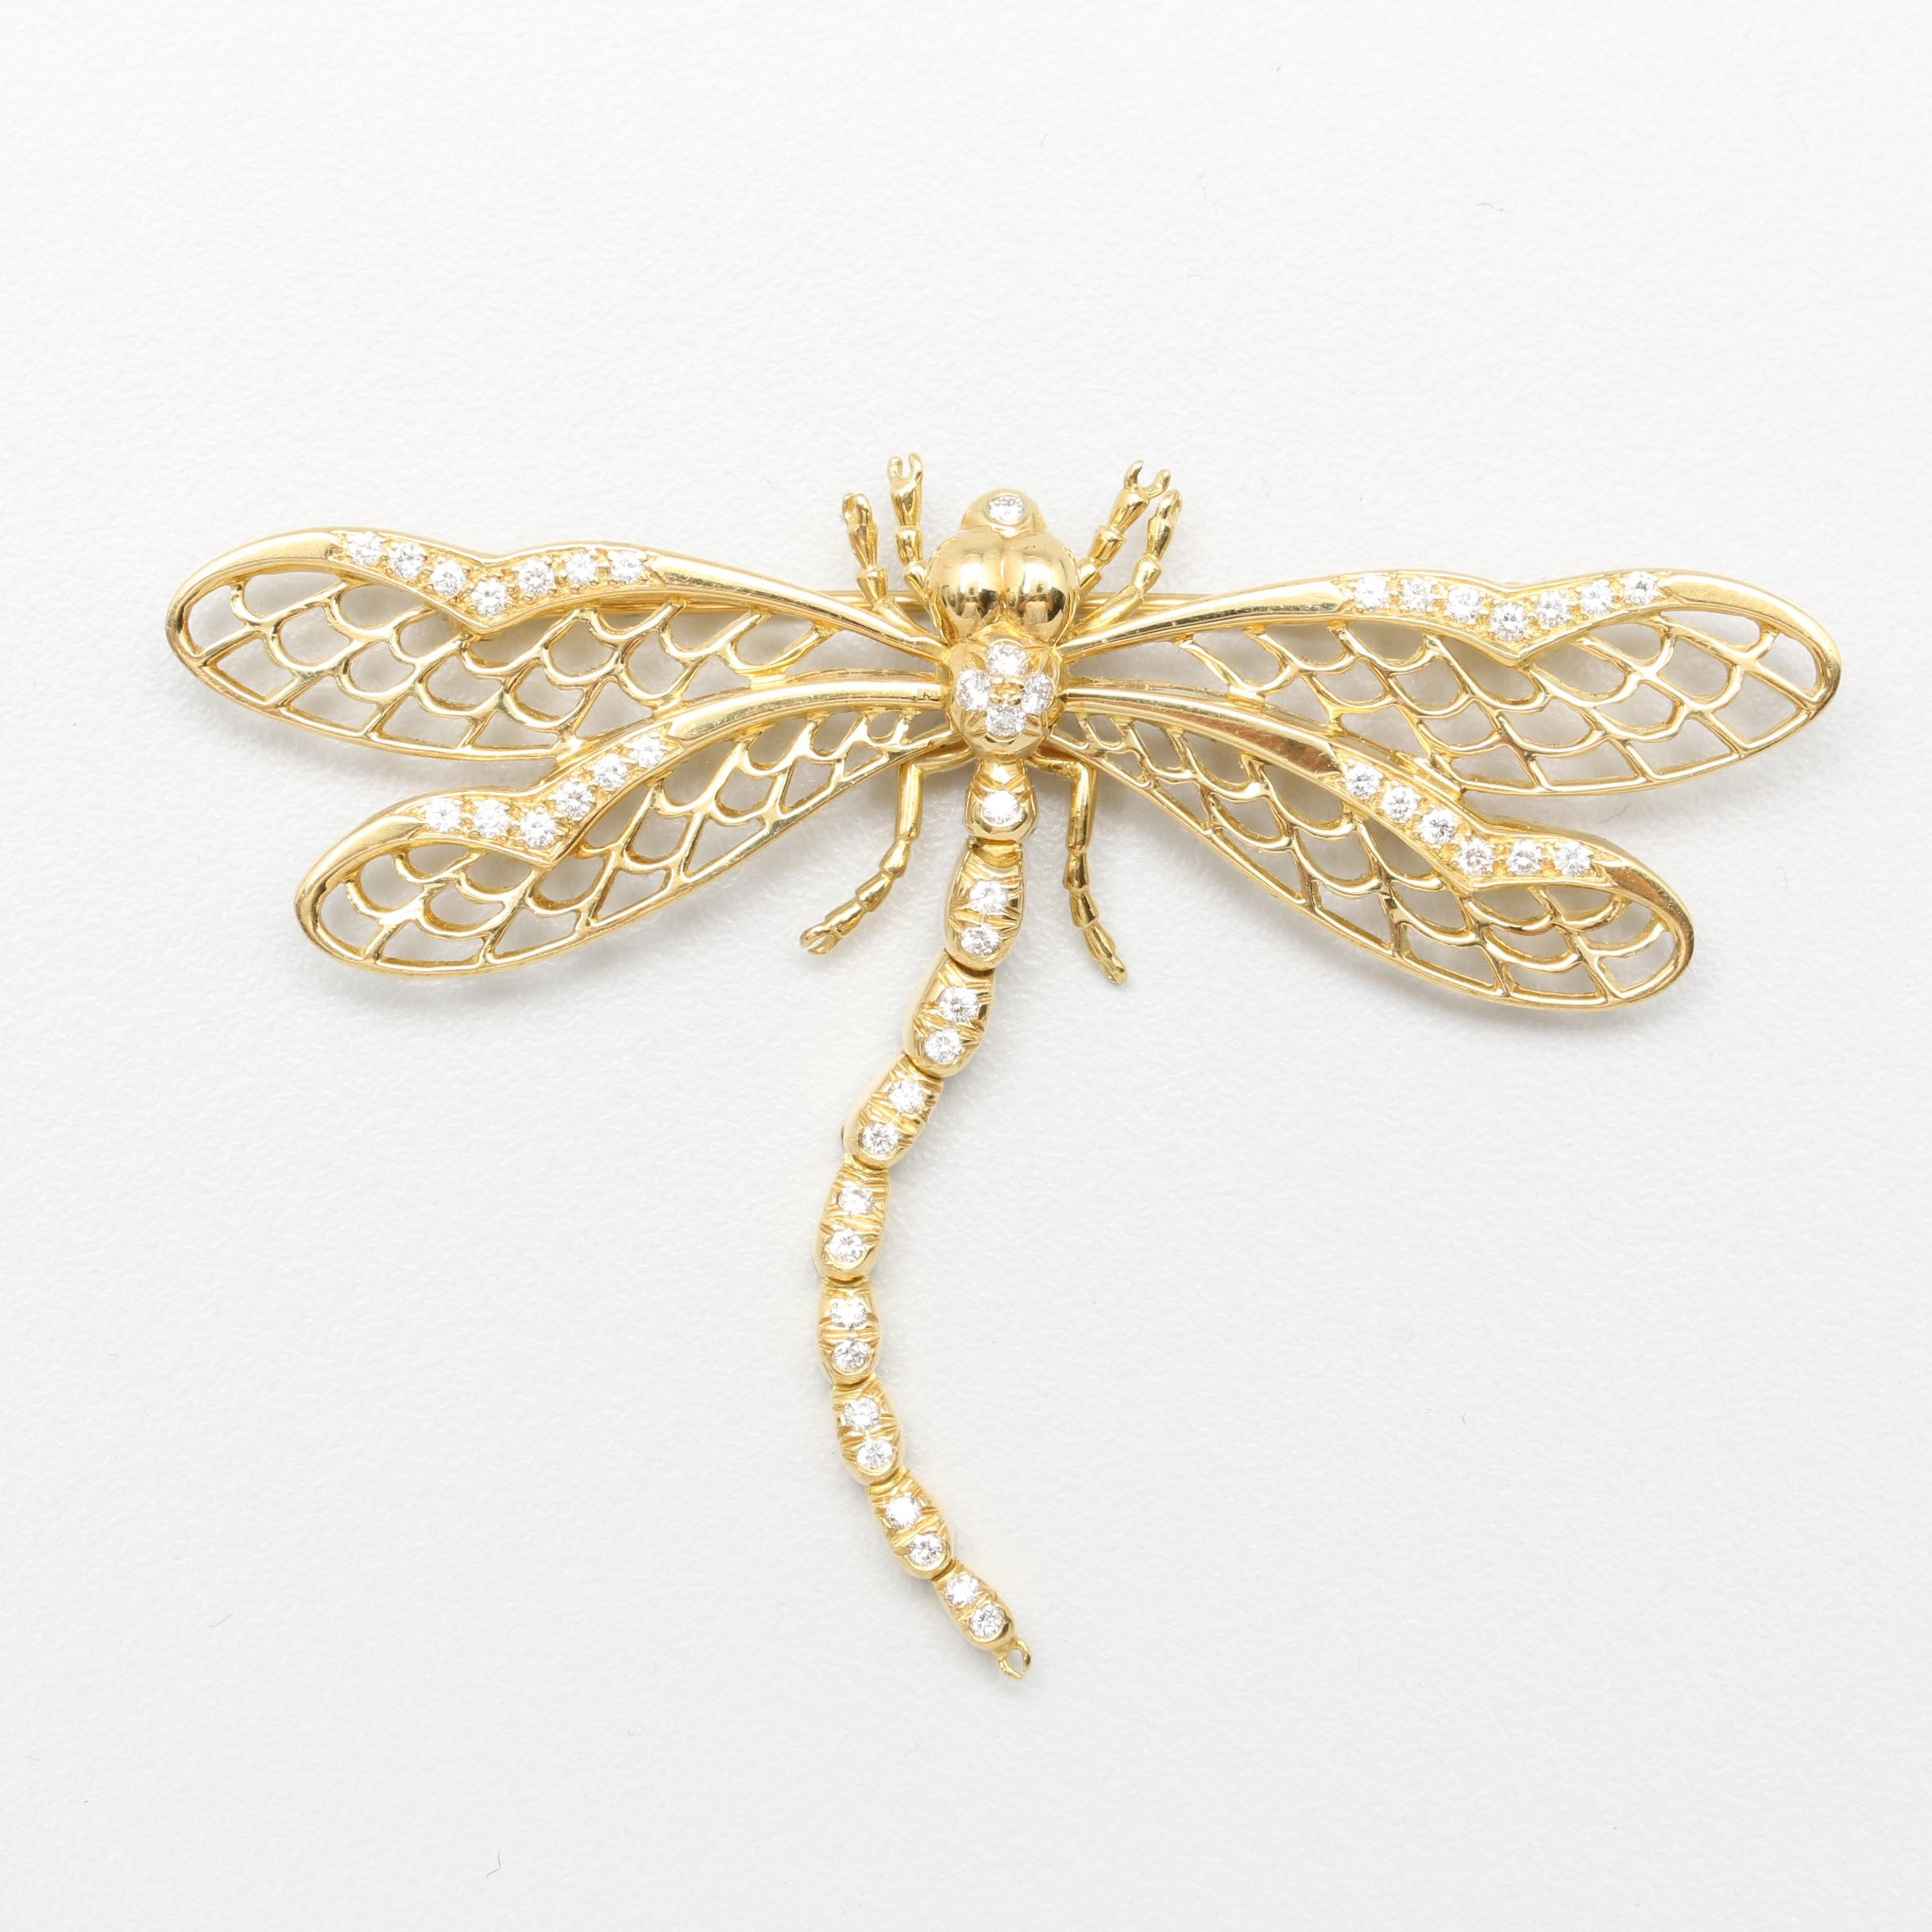 18K Yellow Gold Diamond Articulated Dragonfly Brooch